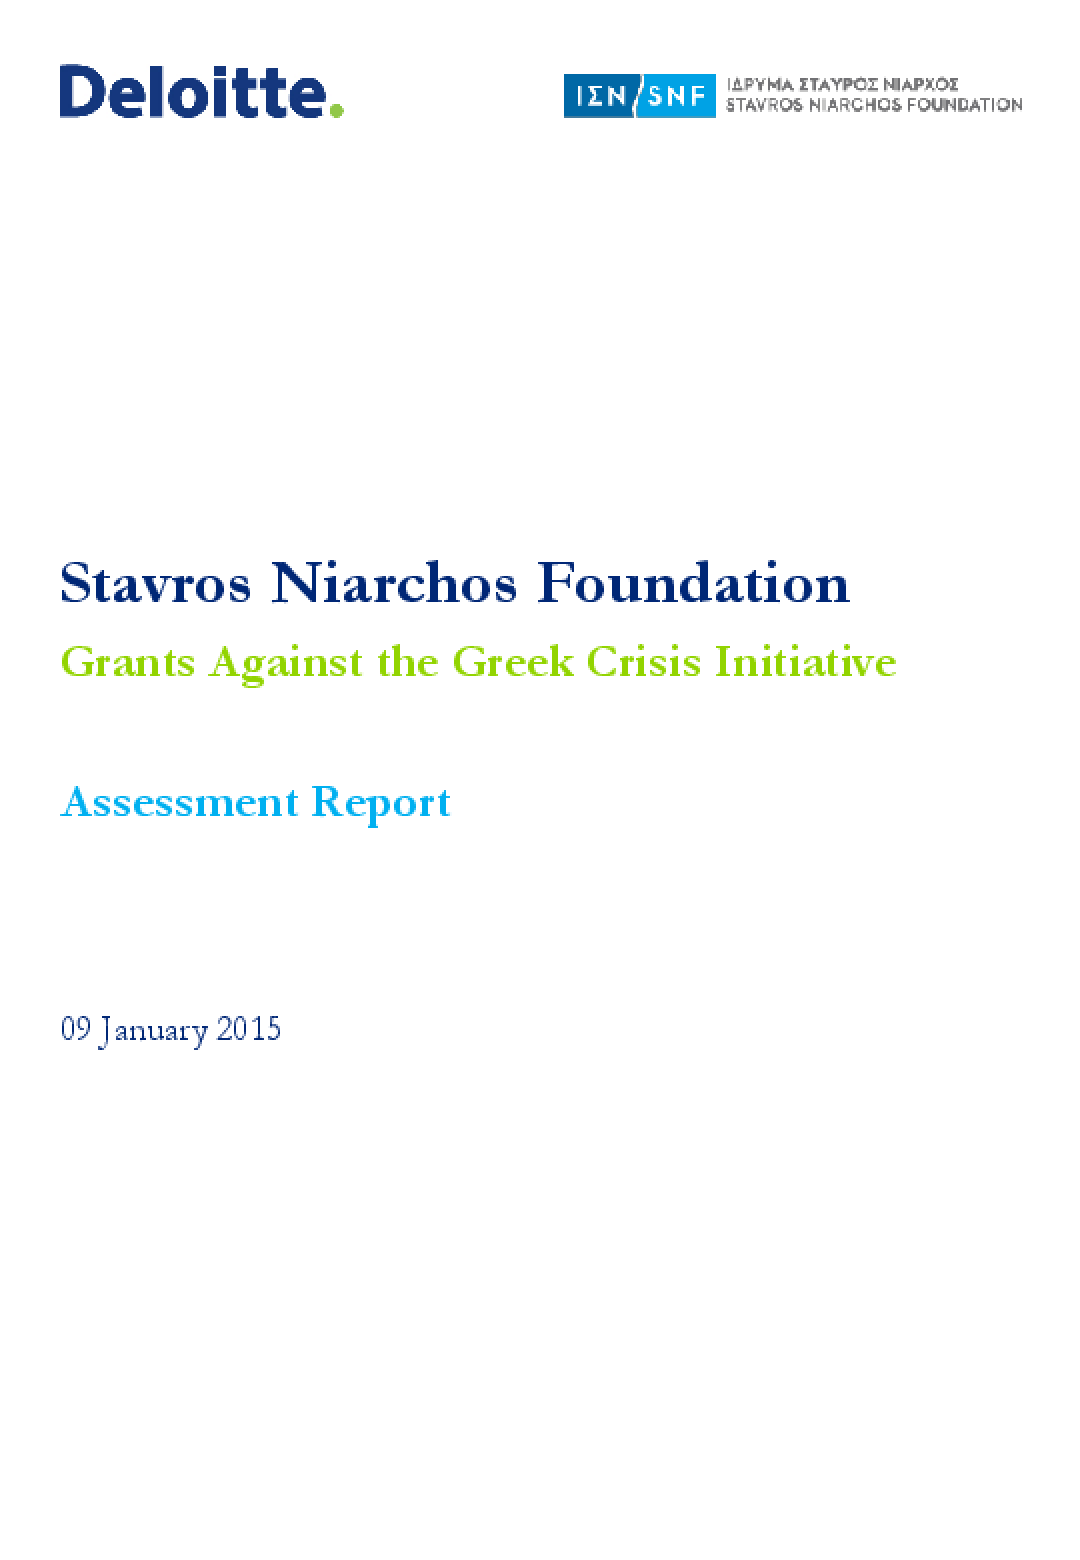 Stavros Niarchos Foundation: Grants Against the Greek Crisis Initiative - Assessment Report